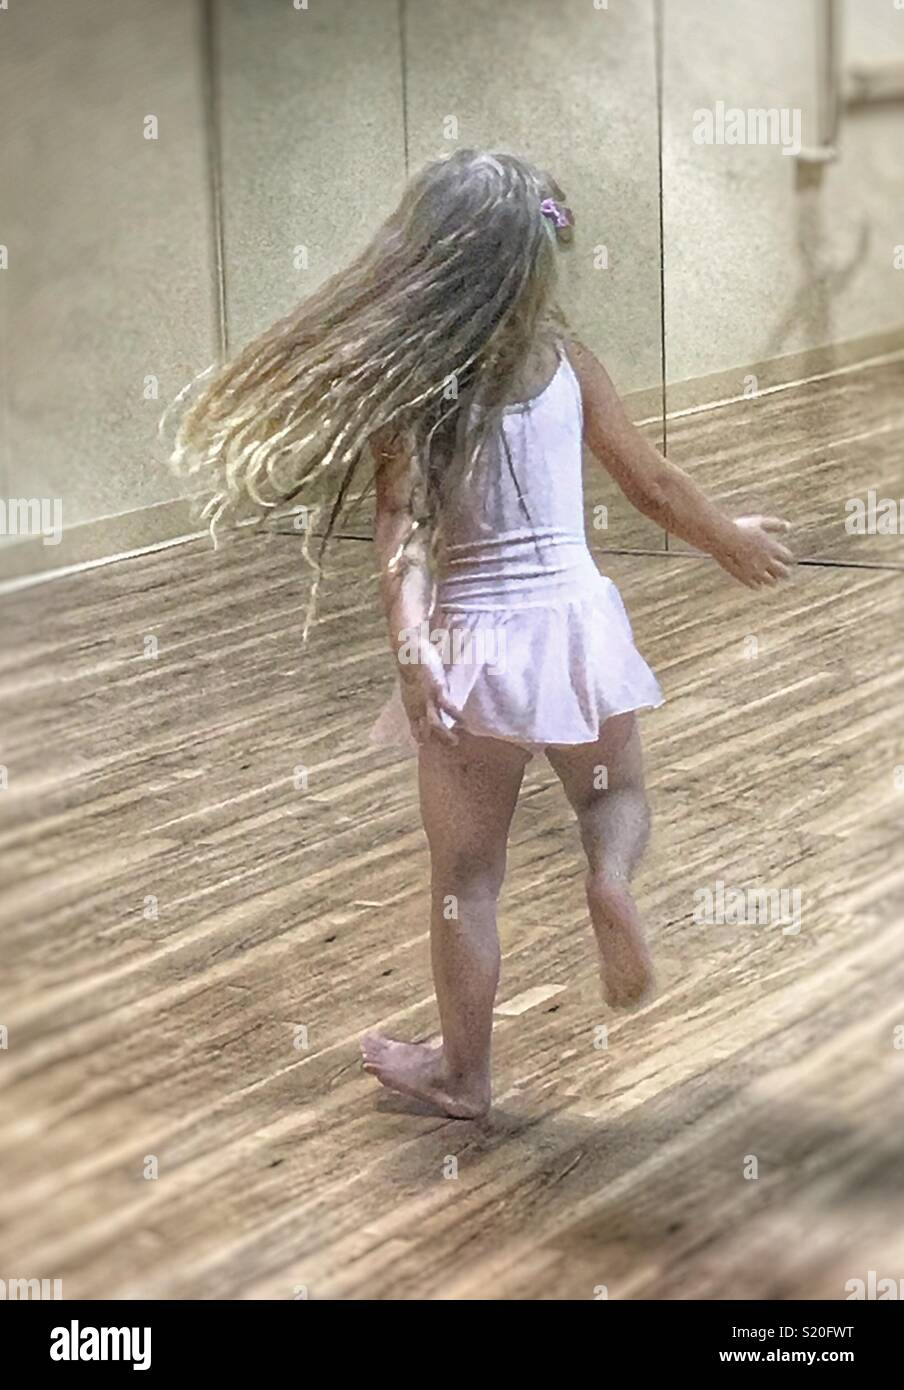 Little girl twirling in dance class - Stock Image